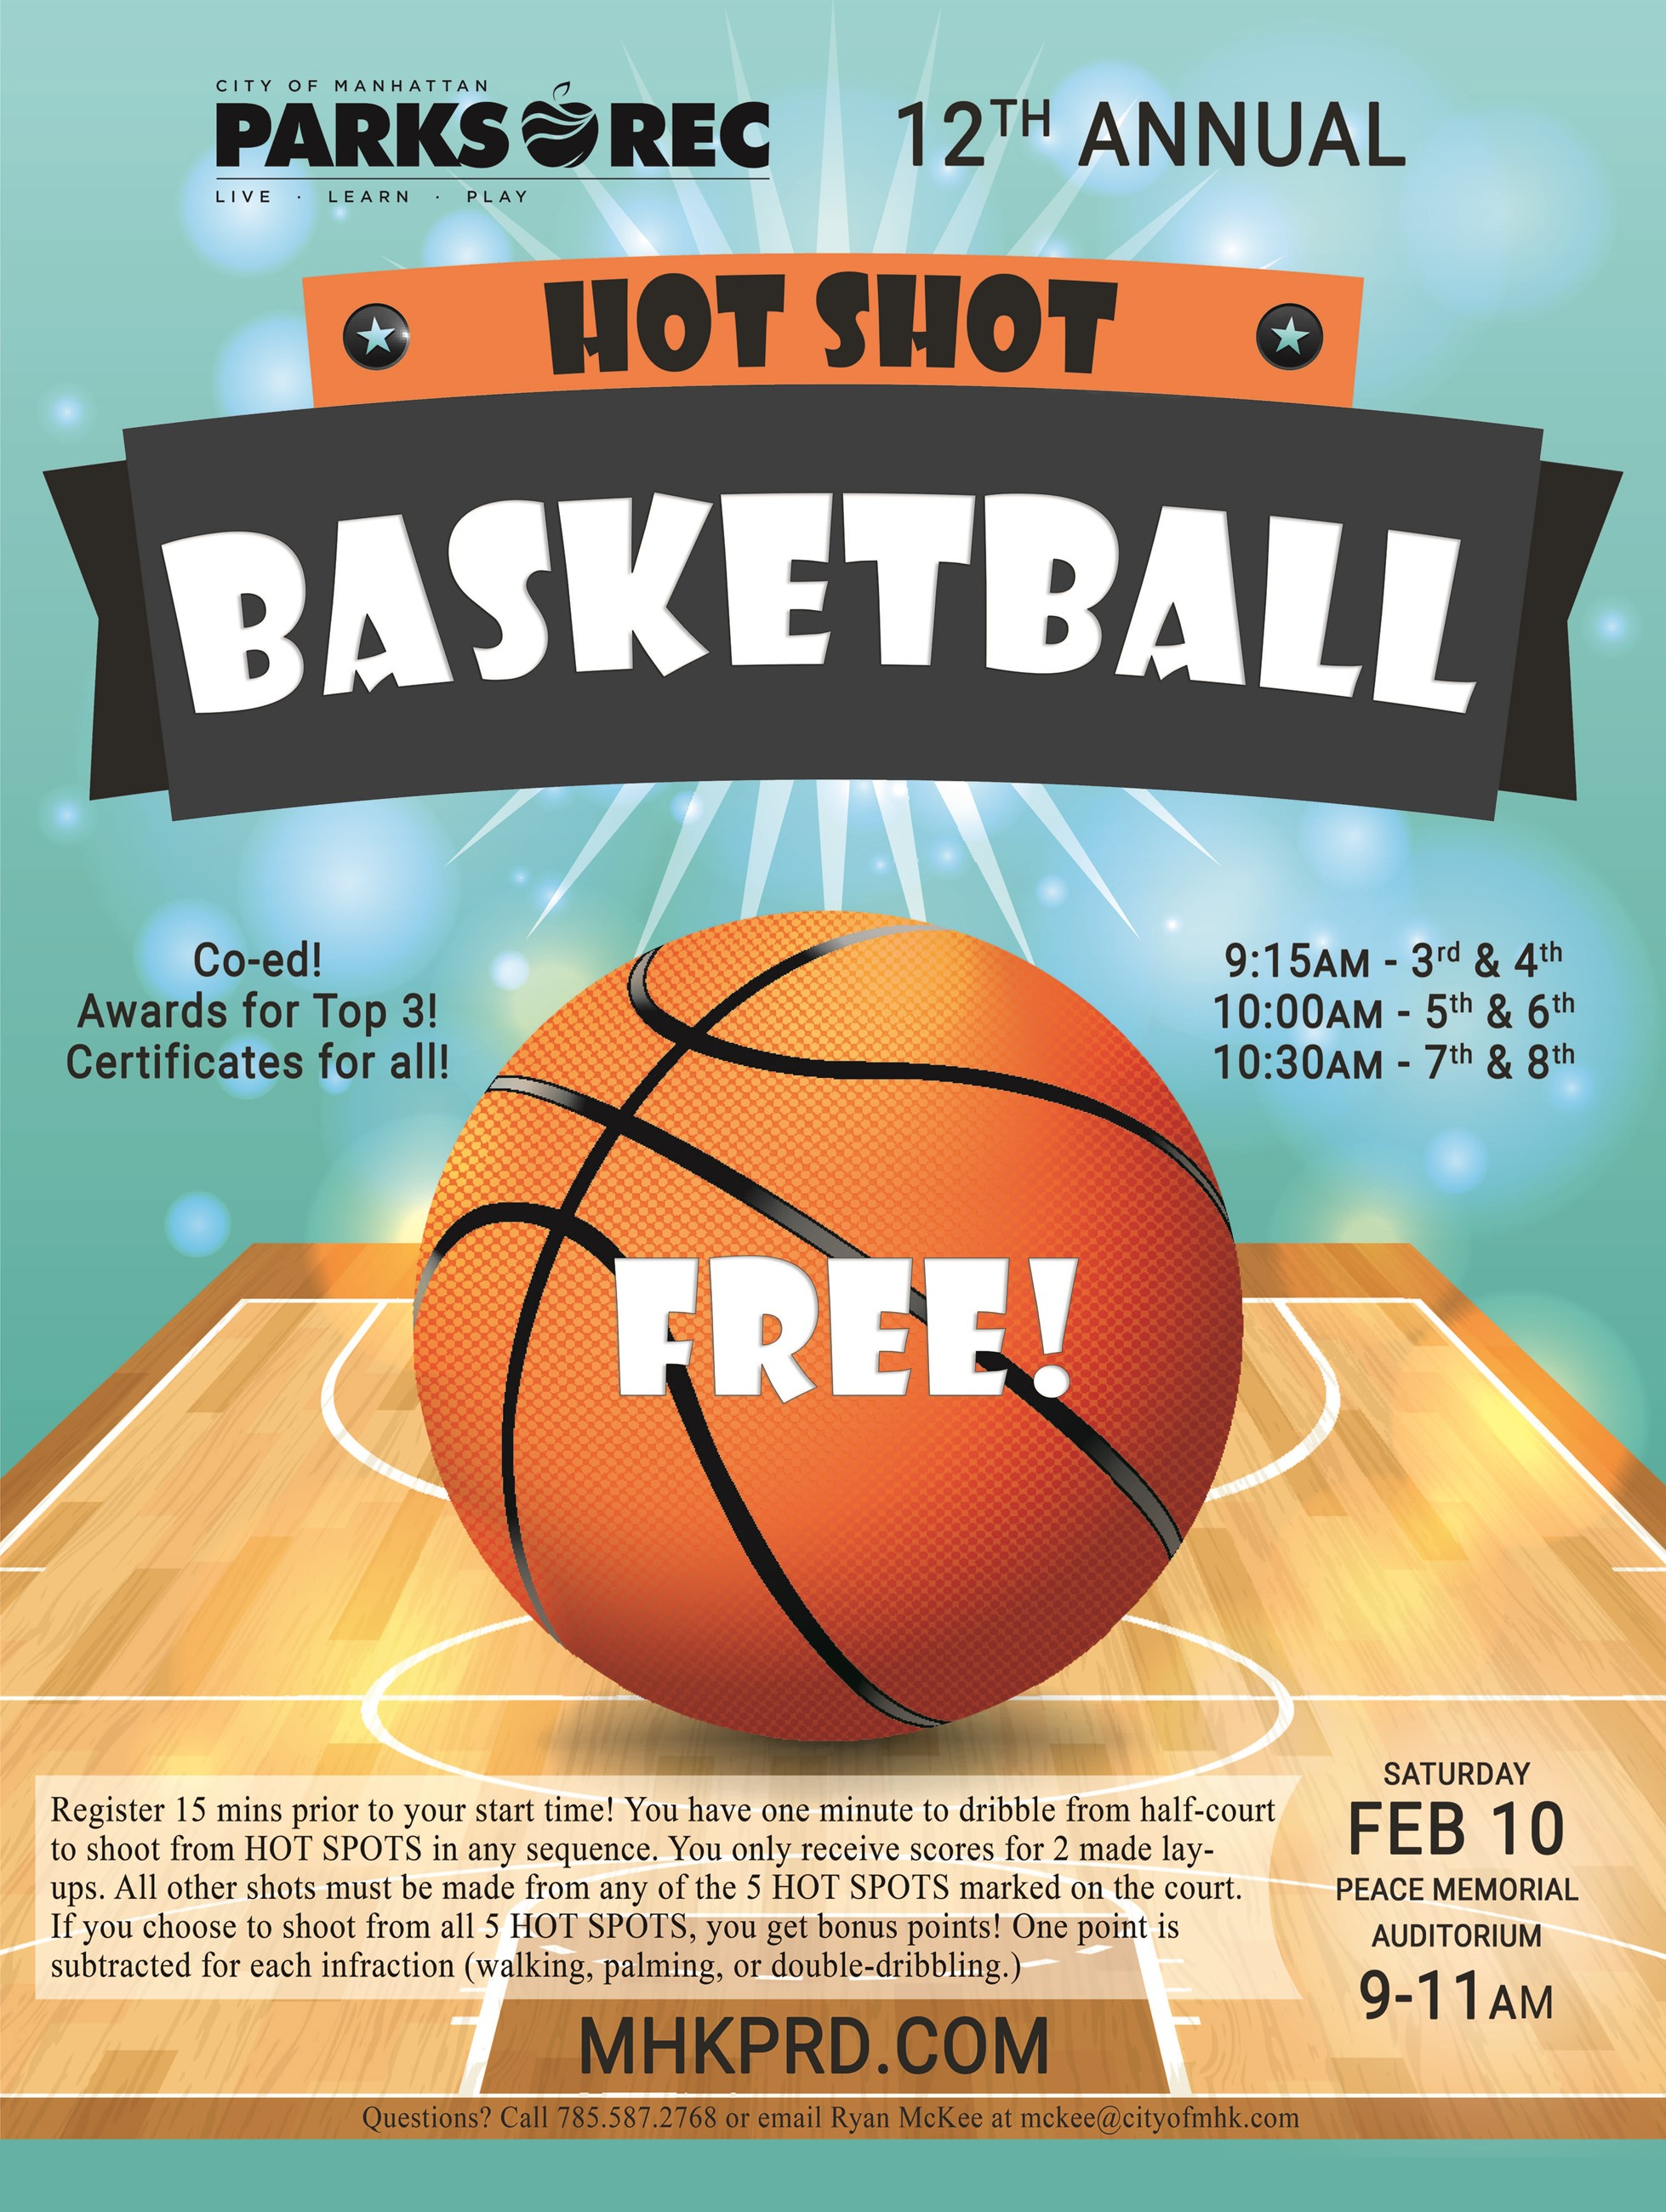 Hot Shot B-Ball Flyer 2018 - Peace Memorial Auditorium.jpg